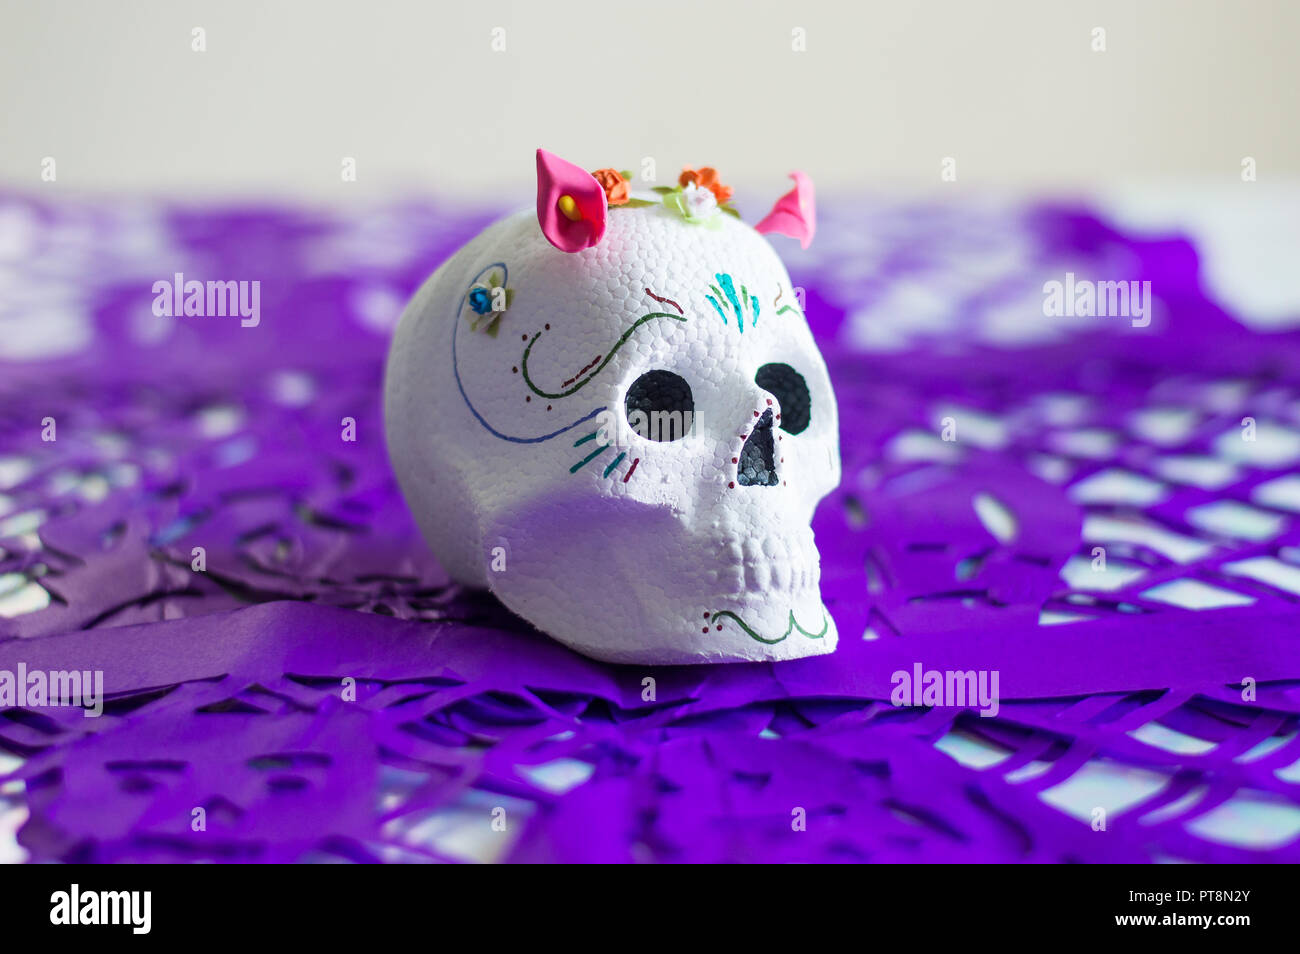 Day Of The Dead Sugar Skull Calavera White Color With Flowers On